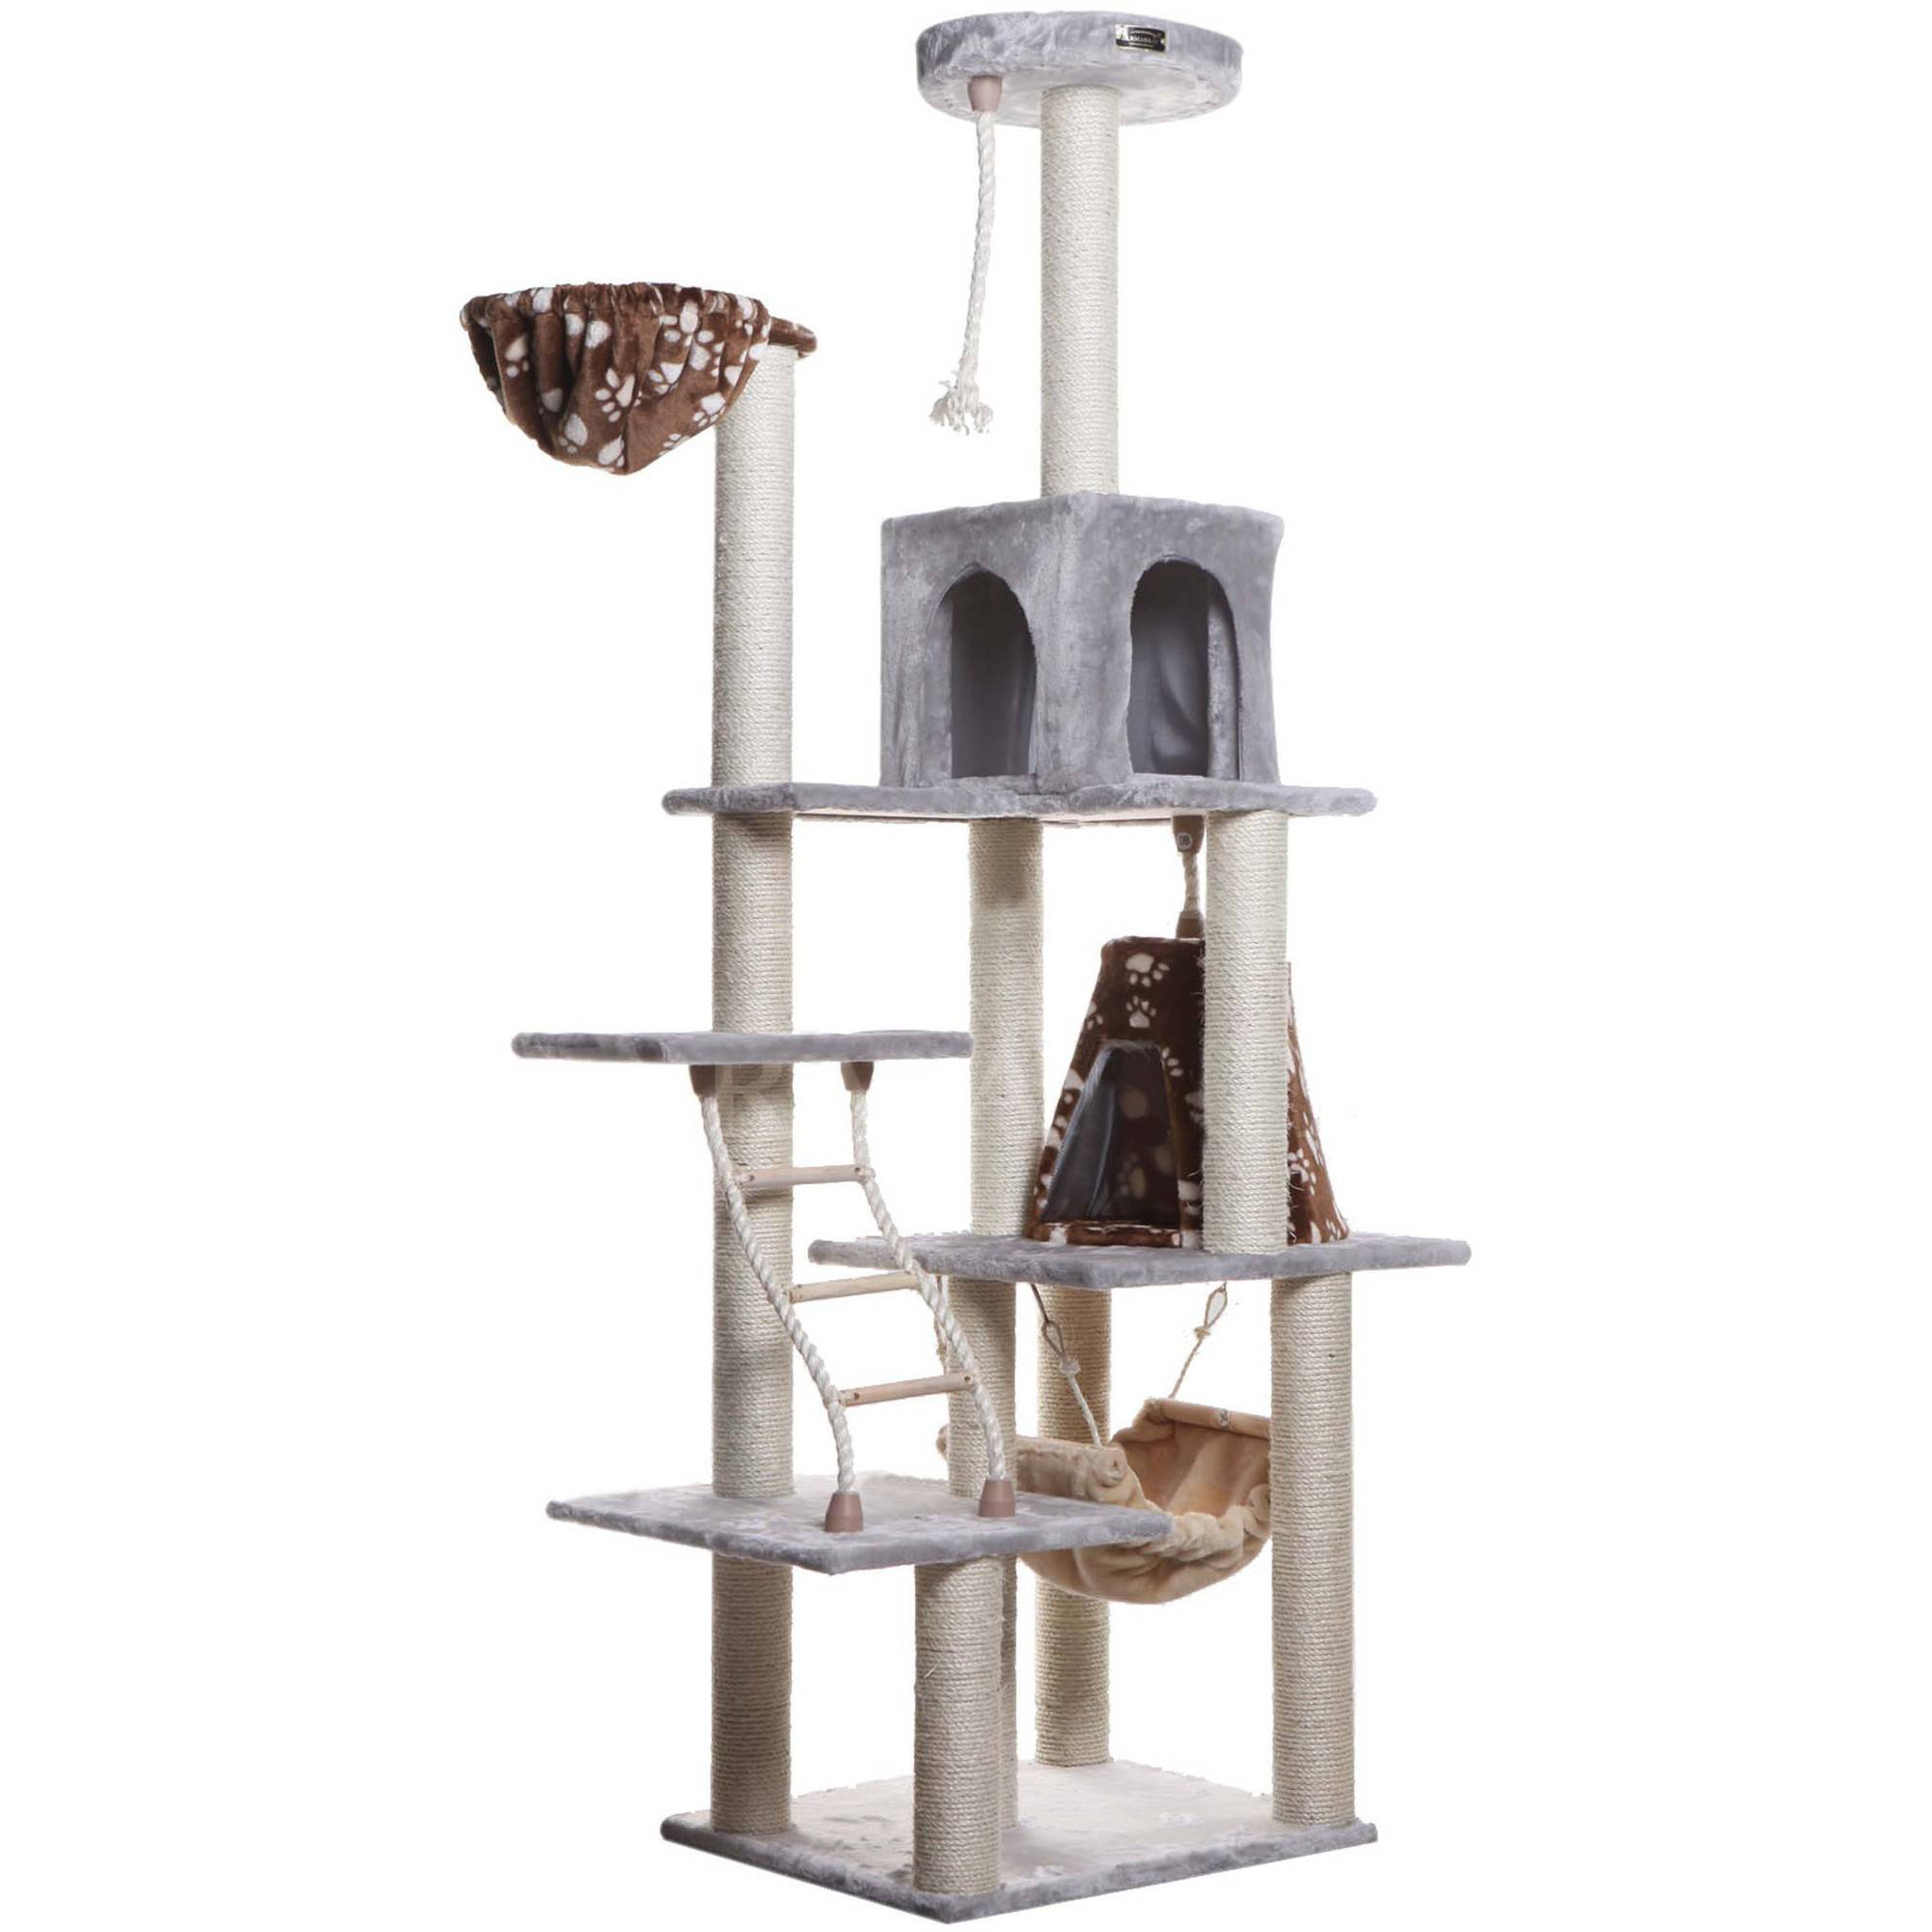 Armarkat Classic Cat Tree Model A7802, 78 inch Silver Gray